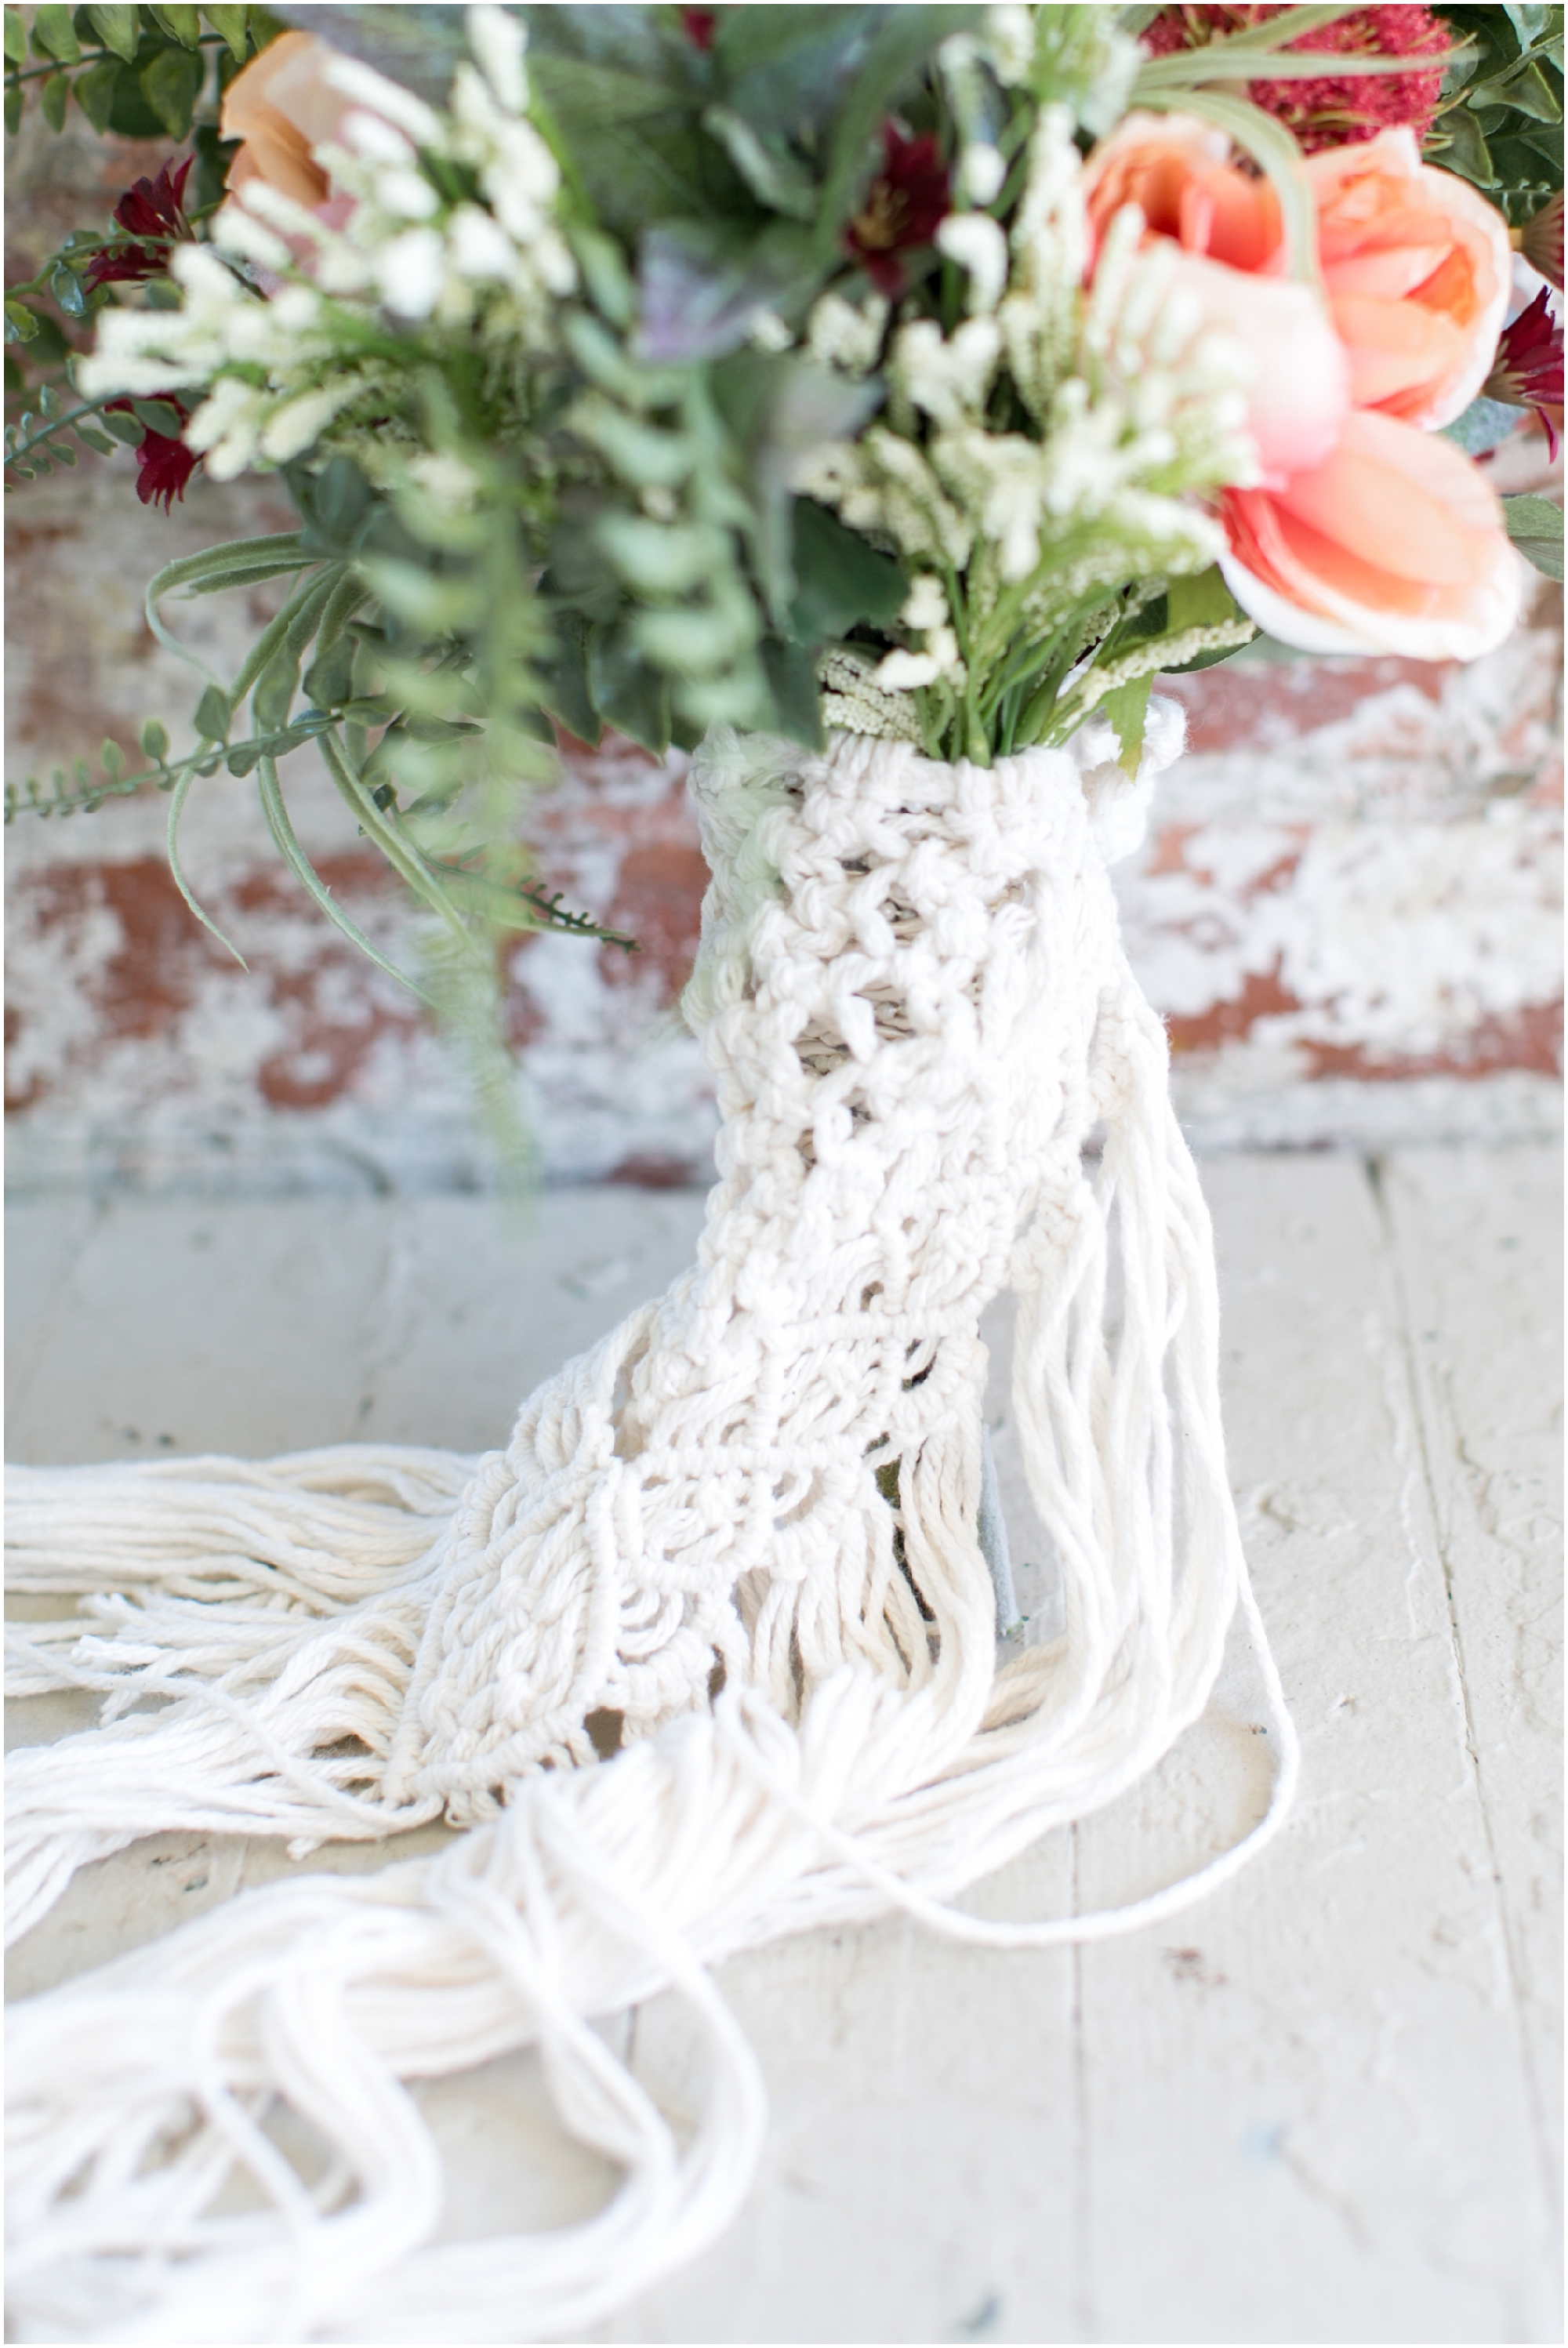 boho wedding at The Tar Roof virginia beach wedding photography boho bride and decorations